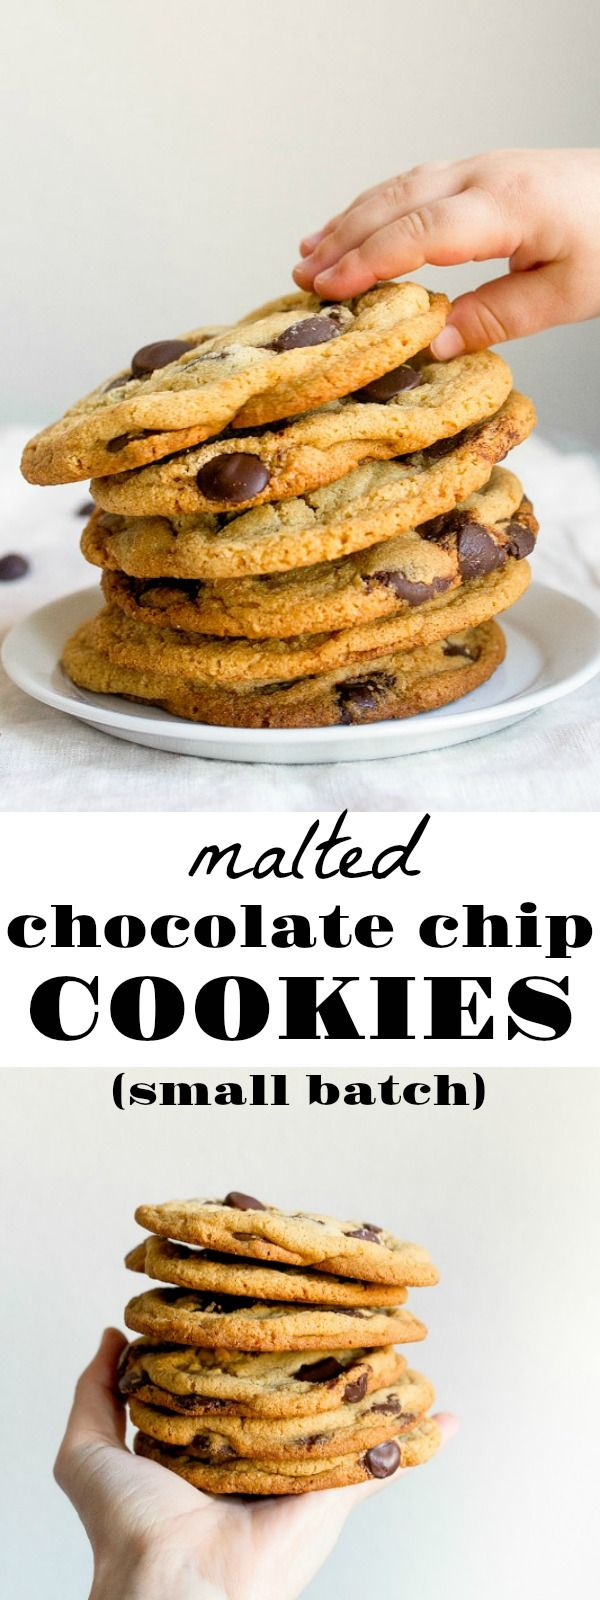 Malted Chocolate Chip Cookies Recipe via @dessertfortwo